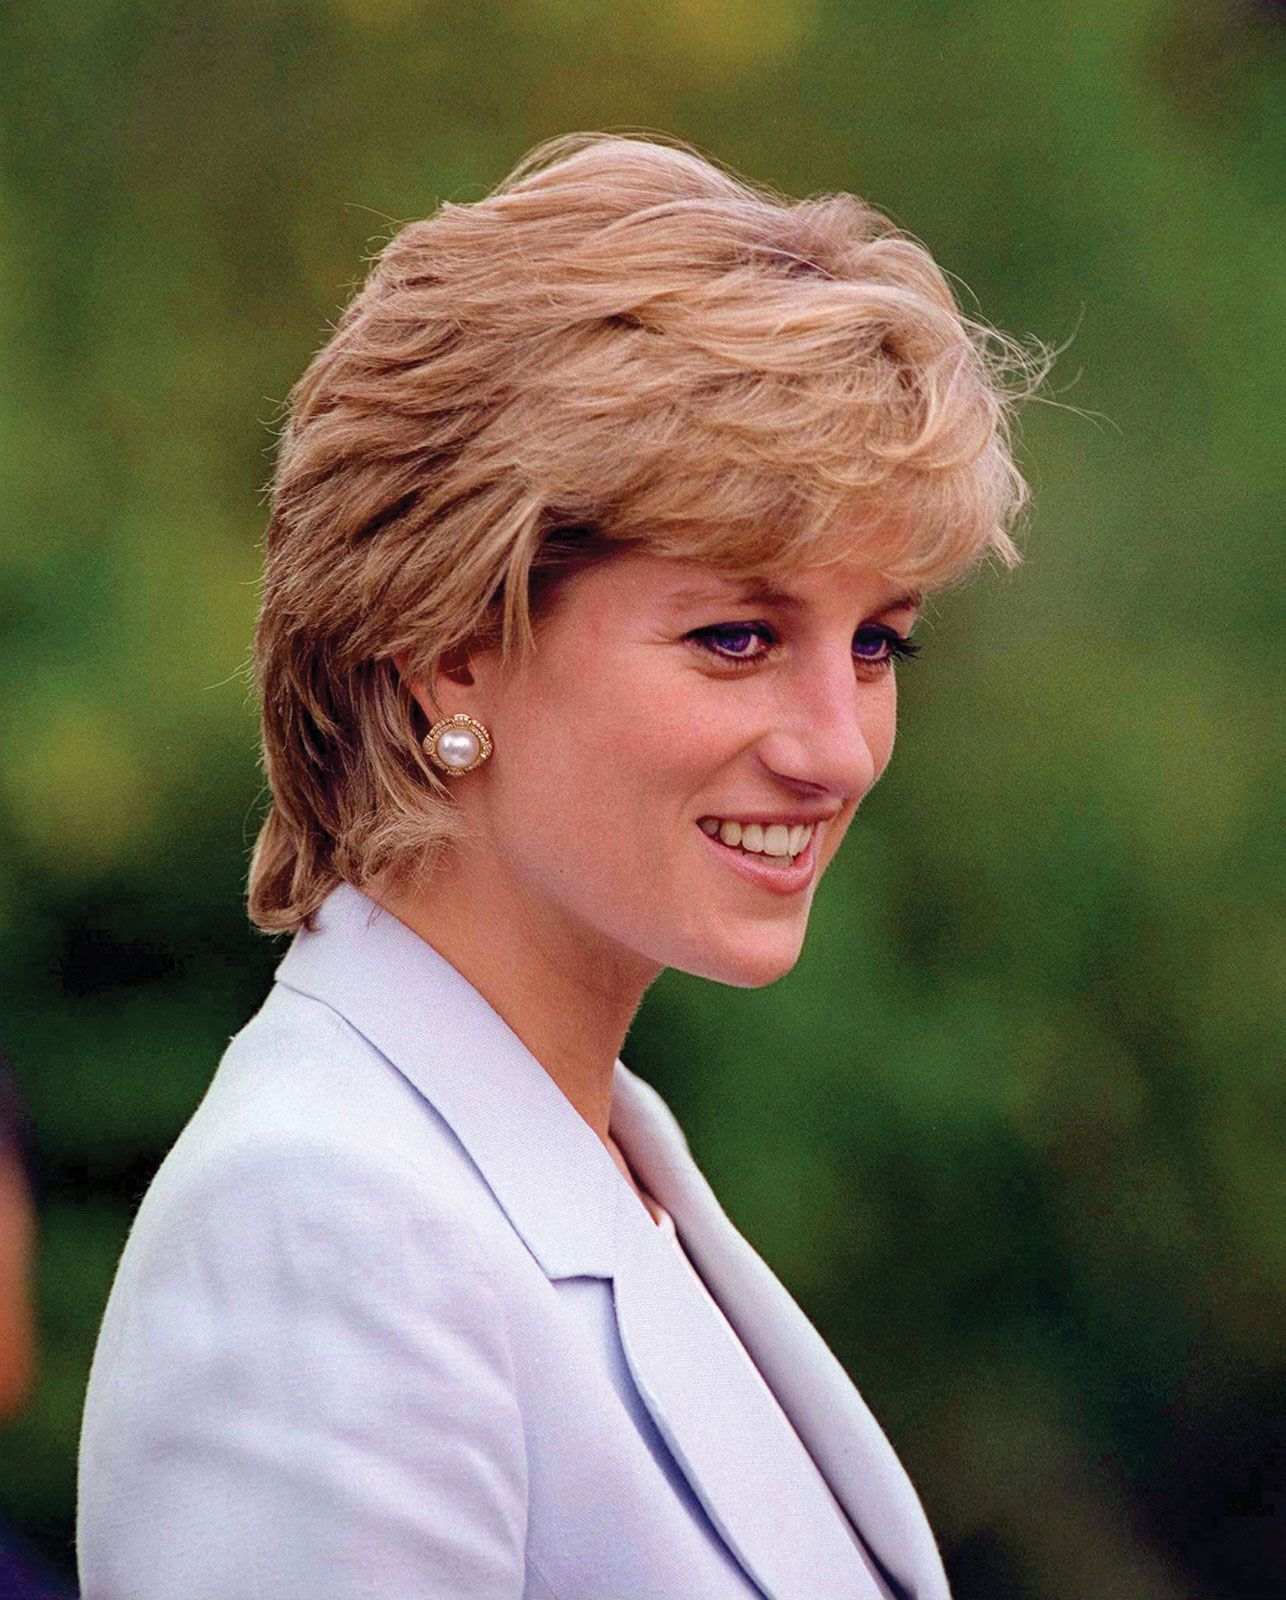 Diana became a member of the English Royal Family with her marriage to Charles, Prince of Whales in 1981. The late princess was adored by the public, and had more popular appeal than any other member of the Royal Family. We think she's a diva because she's a woman of substance: she married substance with style and was equally known for her fund-raising work for international charities, as well as her impeccable fashion sense, besides publicly raising awareness about bulimia.